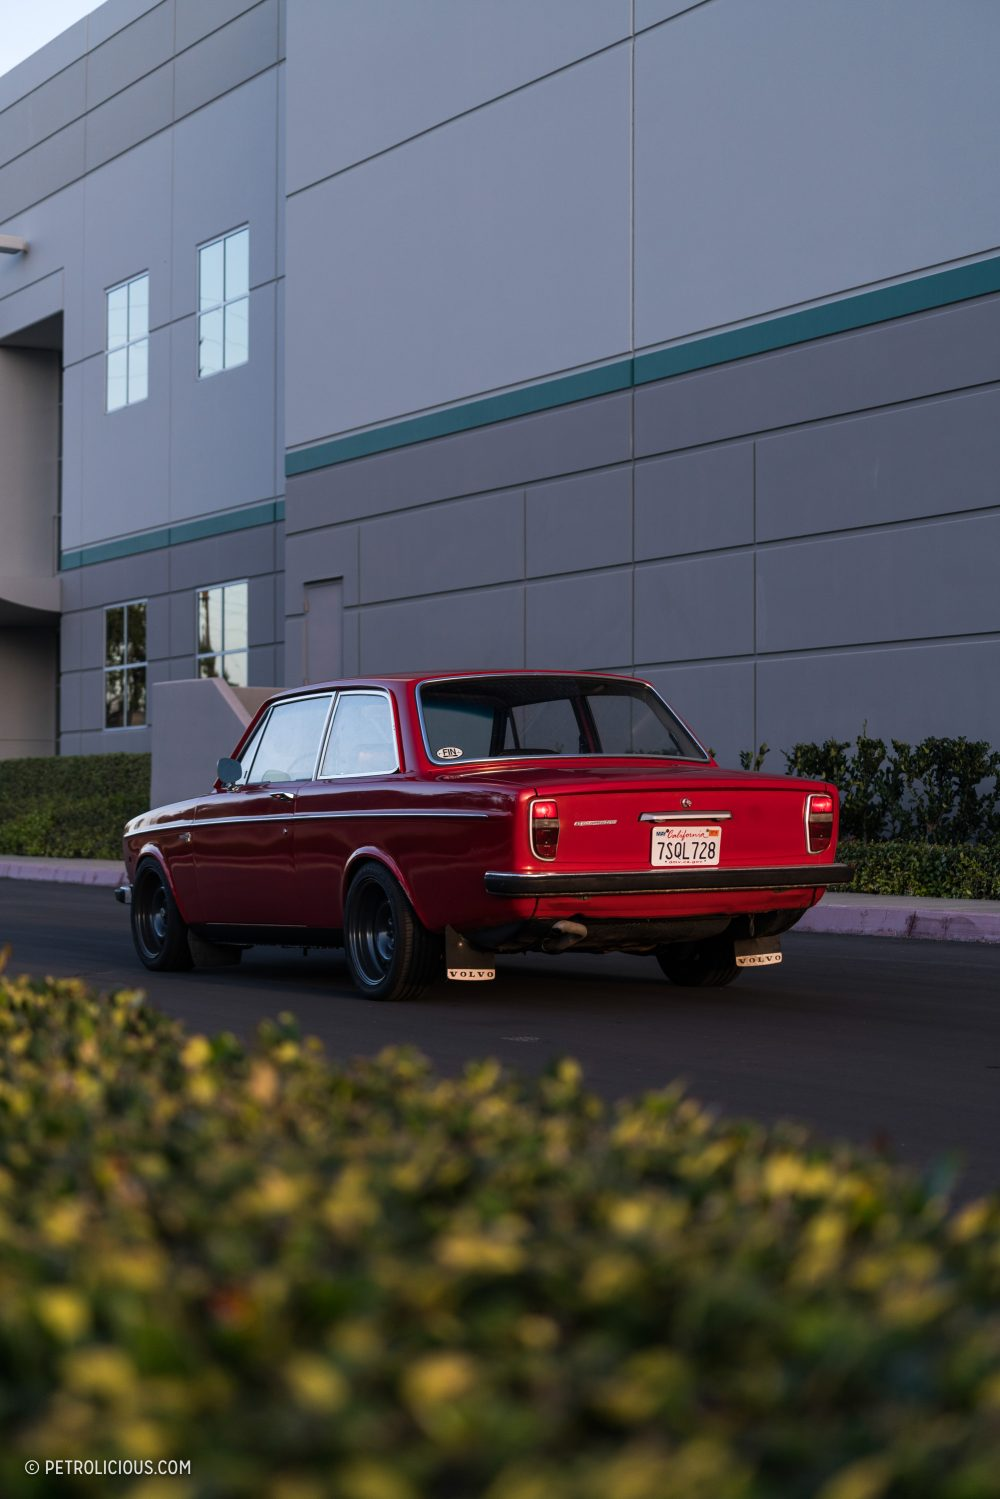 1968 Volvo 142S: Sourcing The Perfect Platform For A Scandinavian